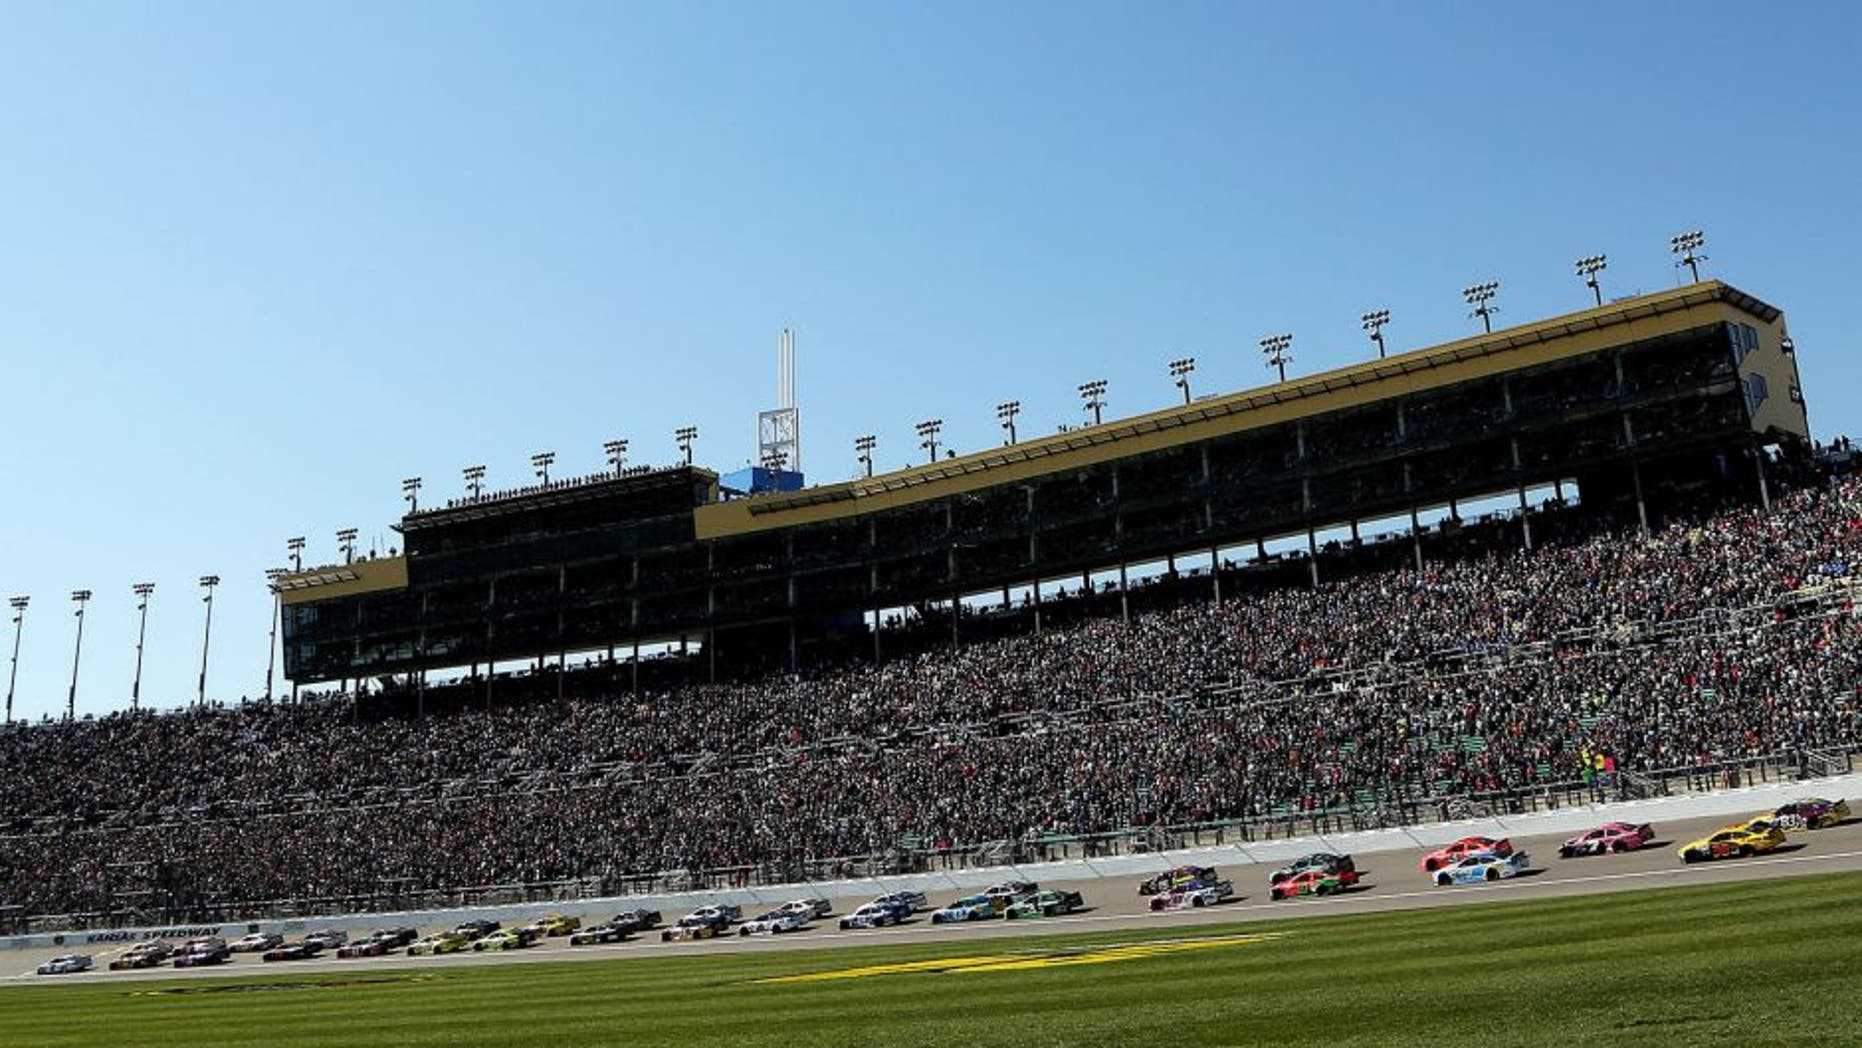 KANSAS CITY, KS - OCTOBER 18: General view as Brad Keselowski, driver of the #2 Miller Lite Ford, leads the field past the green flag to start the NASCAR Sprint Cup Series Hollywood Casino 400 at Kansas Speedway on October 18, 2015 in Kansas City, Kansas. (Photo by Jerry Markland/Getty Images)